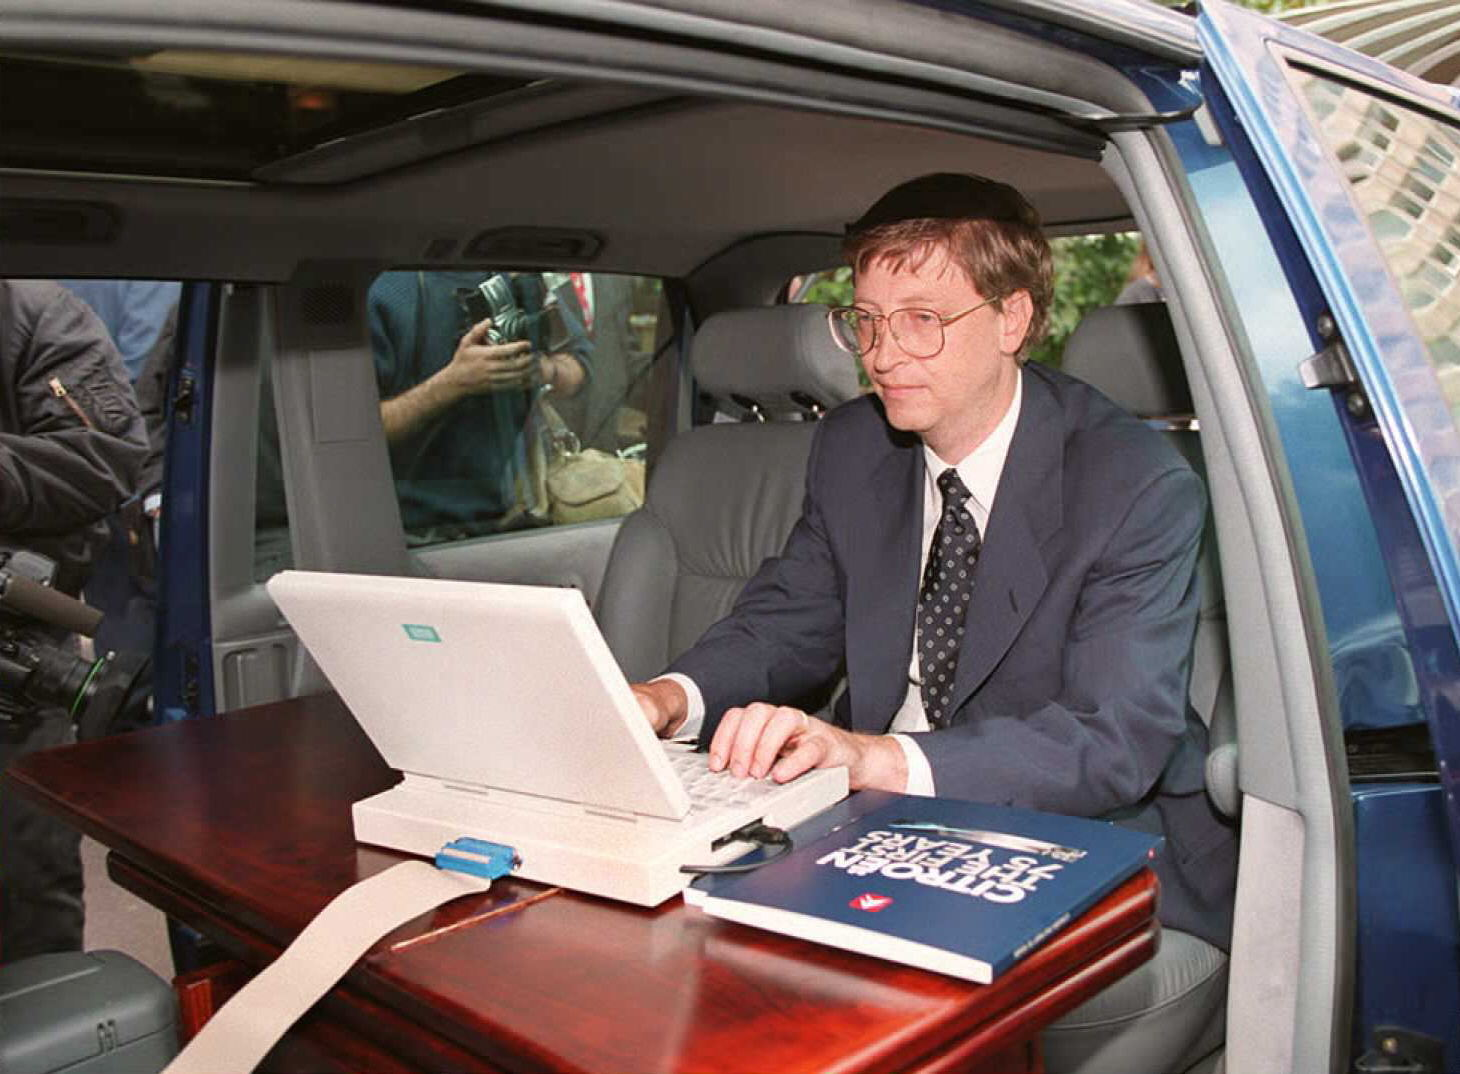 Microsoft president Bill Gates demonstrates Microsoft's Windows 95 program from his car prior to a press conference in Paris in September 1995.